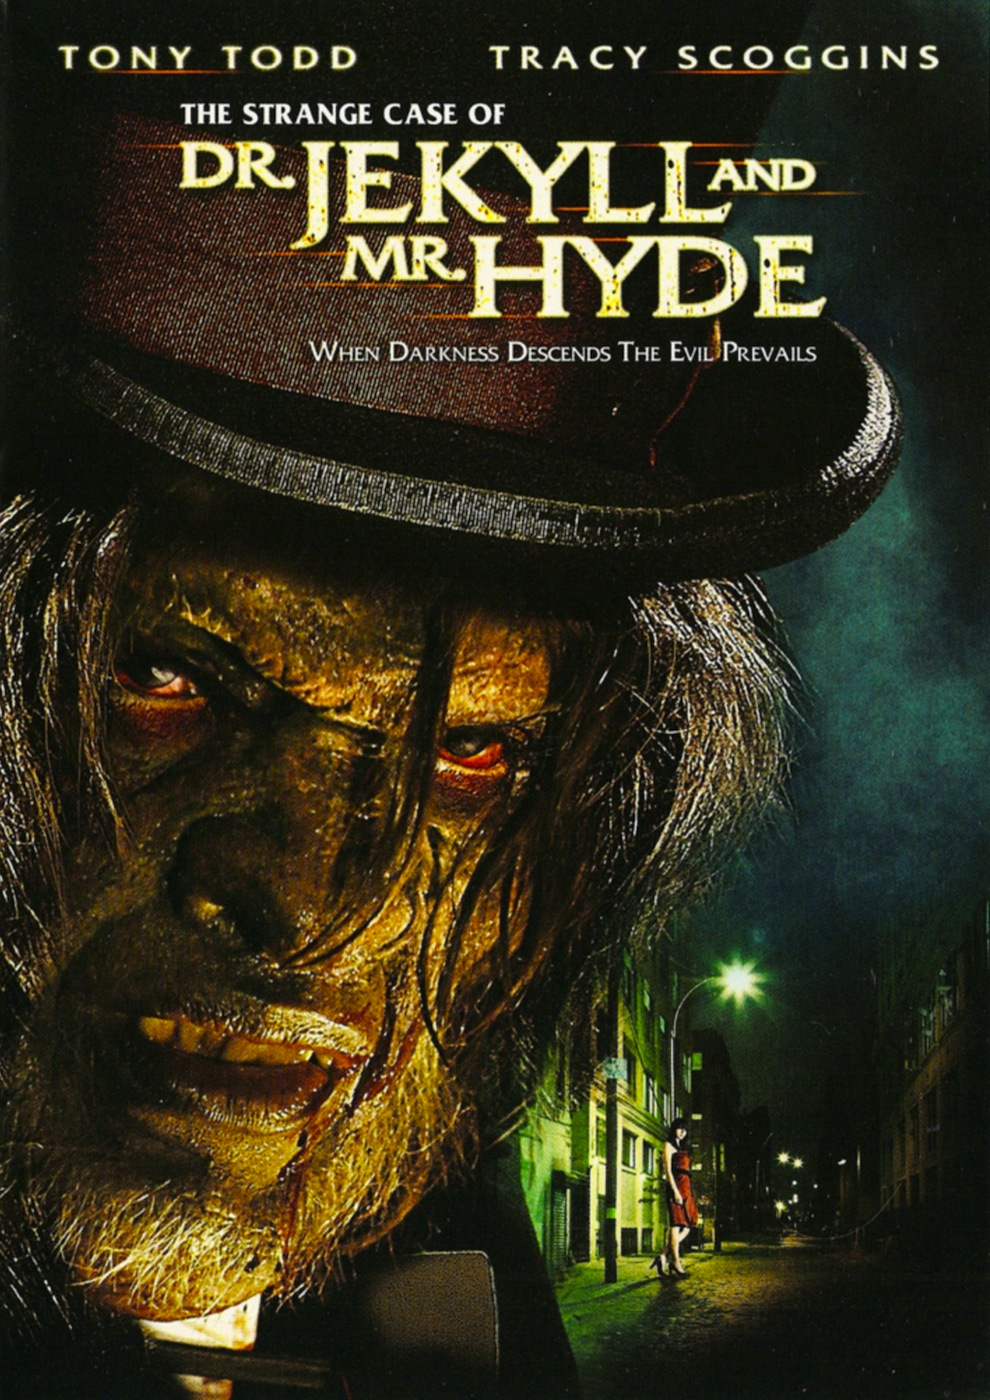 the strange case of dr jekyll and mr hyde coursework Free essay: analysis of the strange case of dr jekyll and mr hyde by robert louis stevenson in an attempt to consider the duality tale, one narrative.